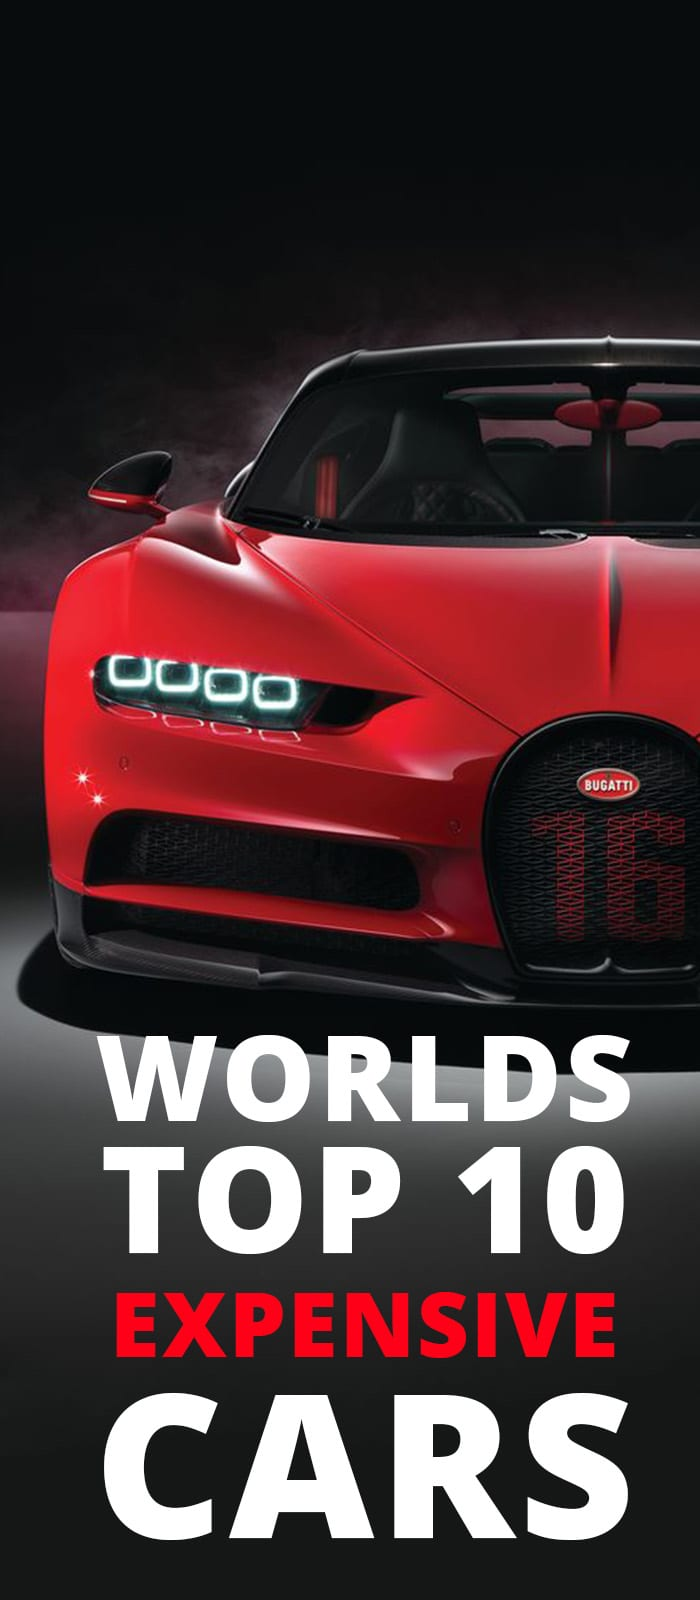 WORLDS TOP 10 EXPENSIVE CARS.